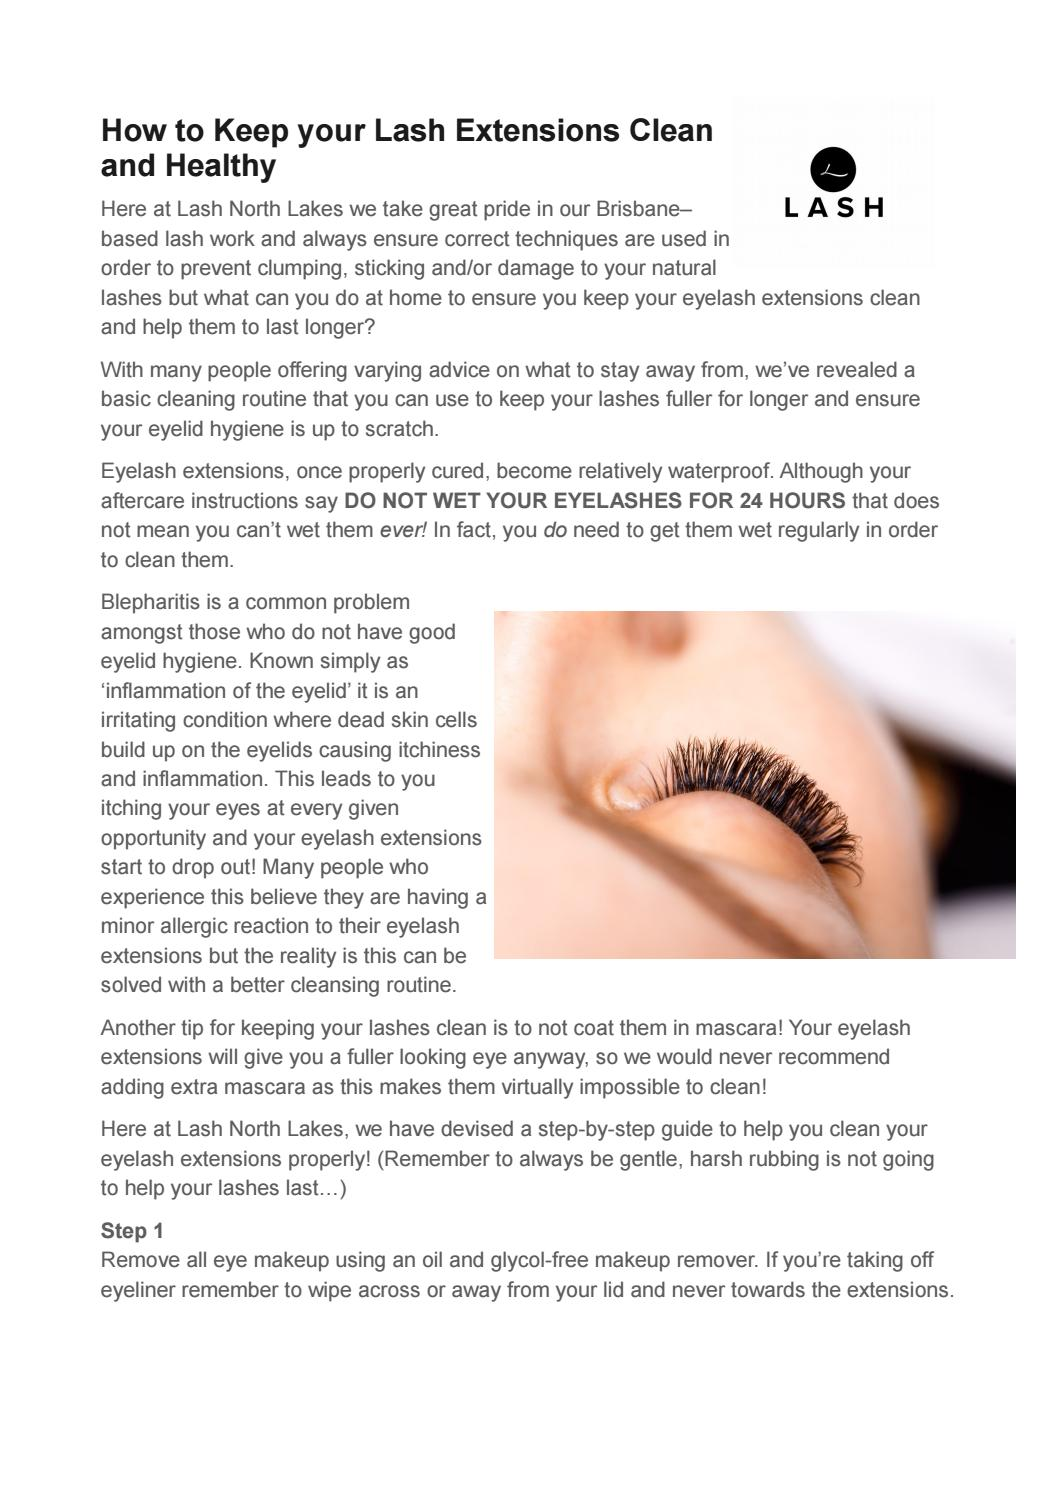 How To Keep Your Lash Extensions Clean And Healthy By Lash North